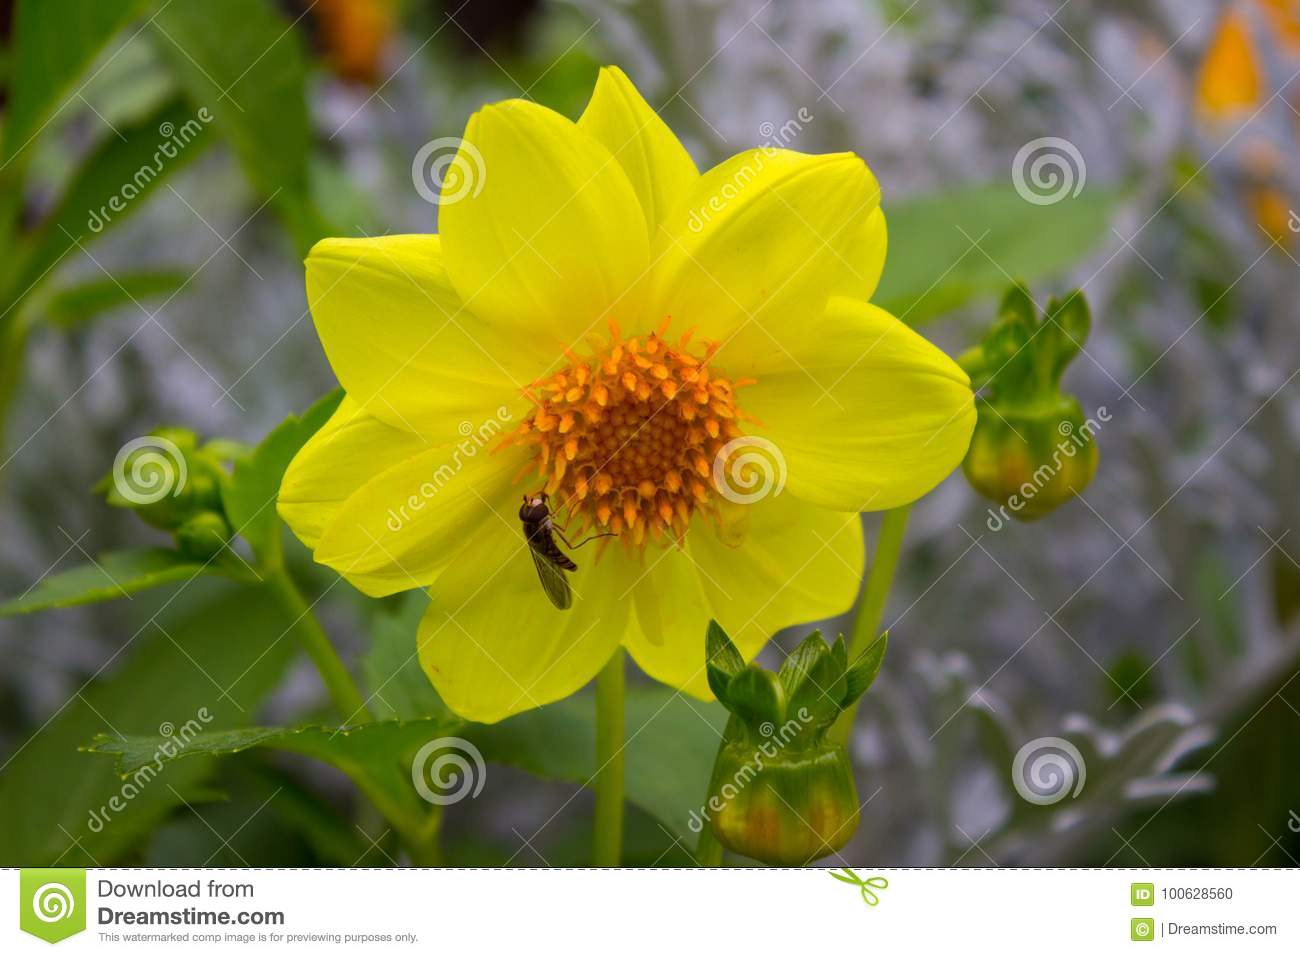 Yellow dahlia flower on background of different types of flowers download yellow dahlia flower on background of different types of flowers stock photo image of mightylinksfo